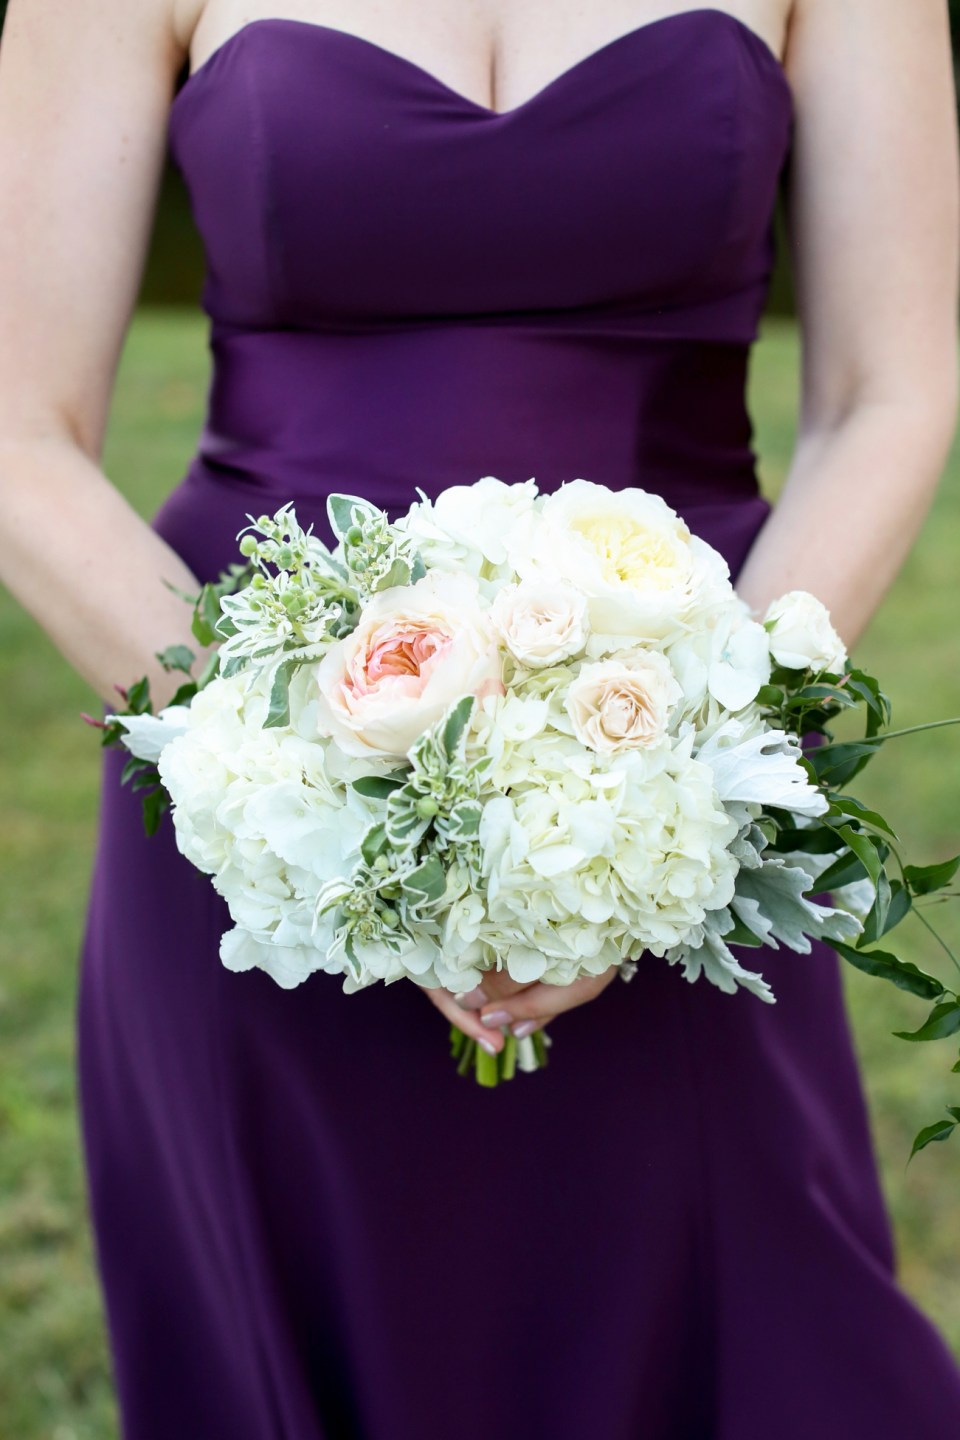 Neutral-Wedding-Bouquet-Inspiration-Flowers-Bridal-Bridesmaids416